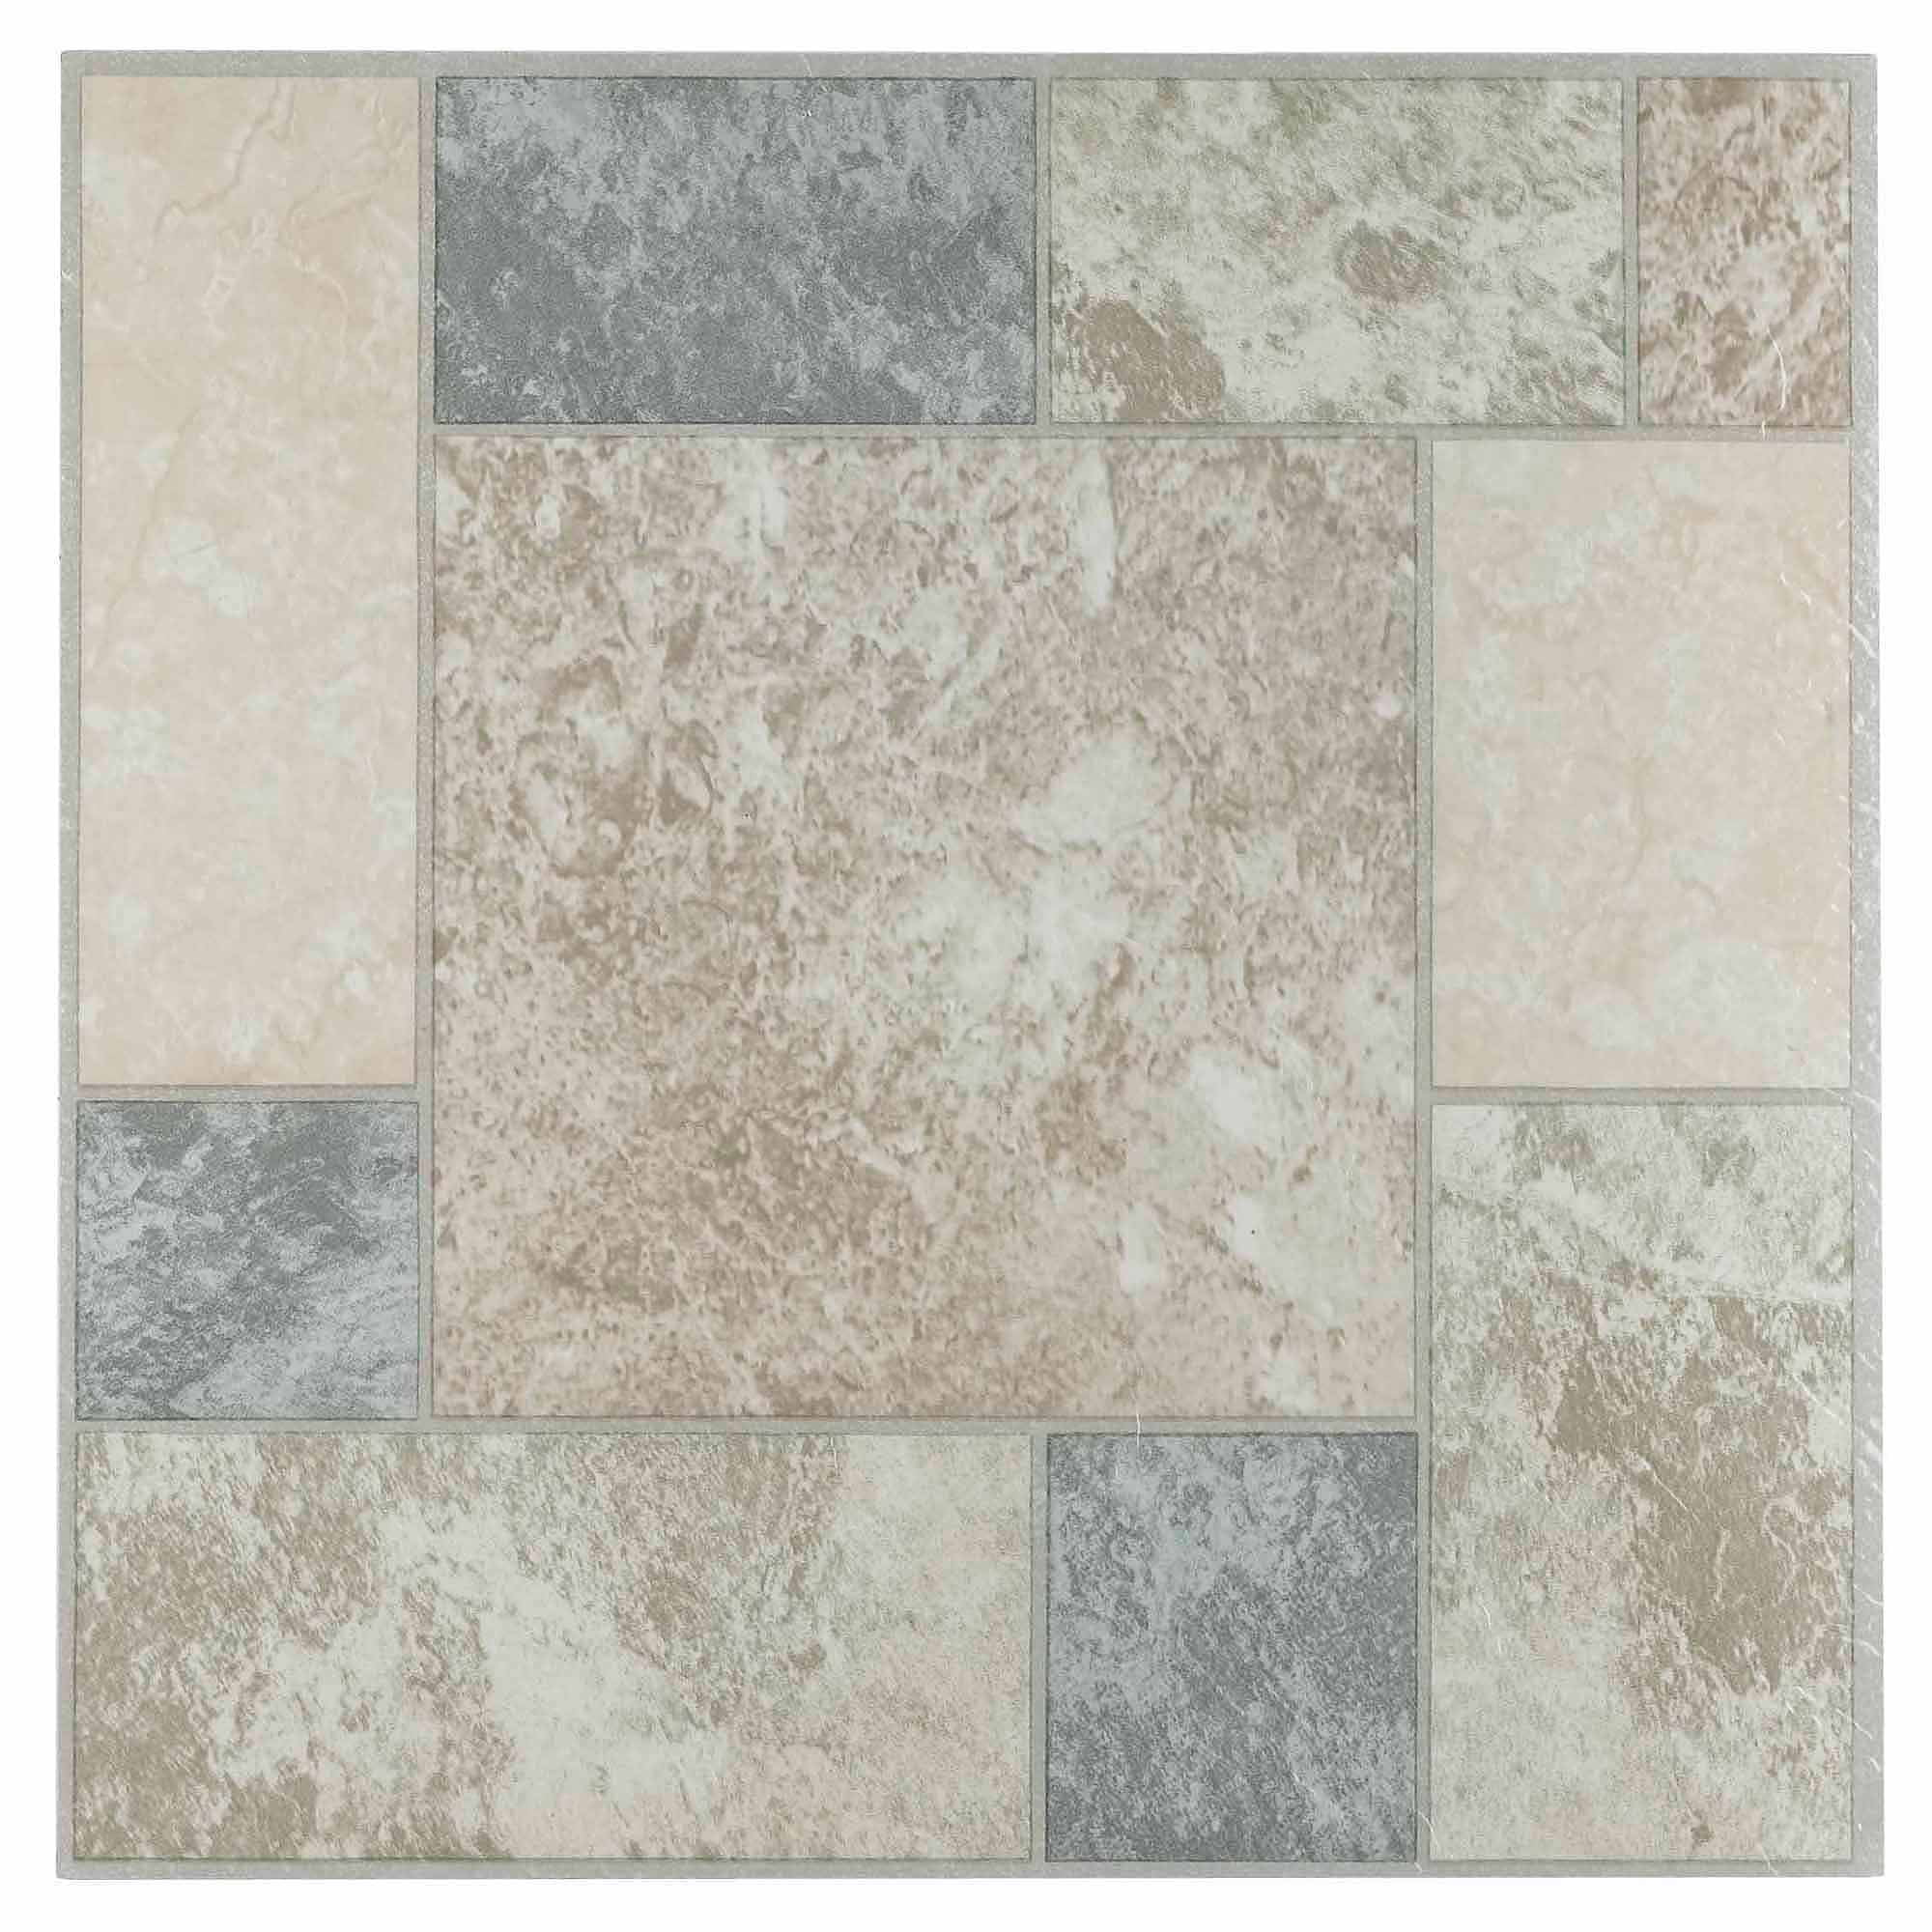 Vinyl flooring walmart nexus marble blocks 12x12self adhesive vinyl floor tile 20 tiles20 sqft dailygadgetfo Choice Image